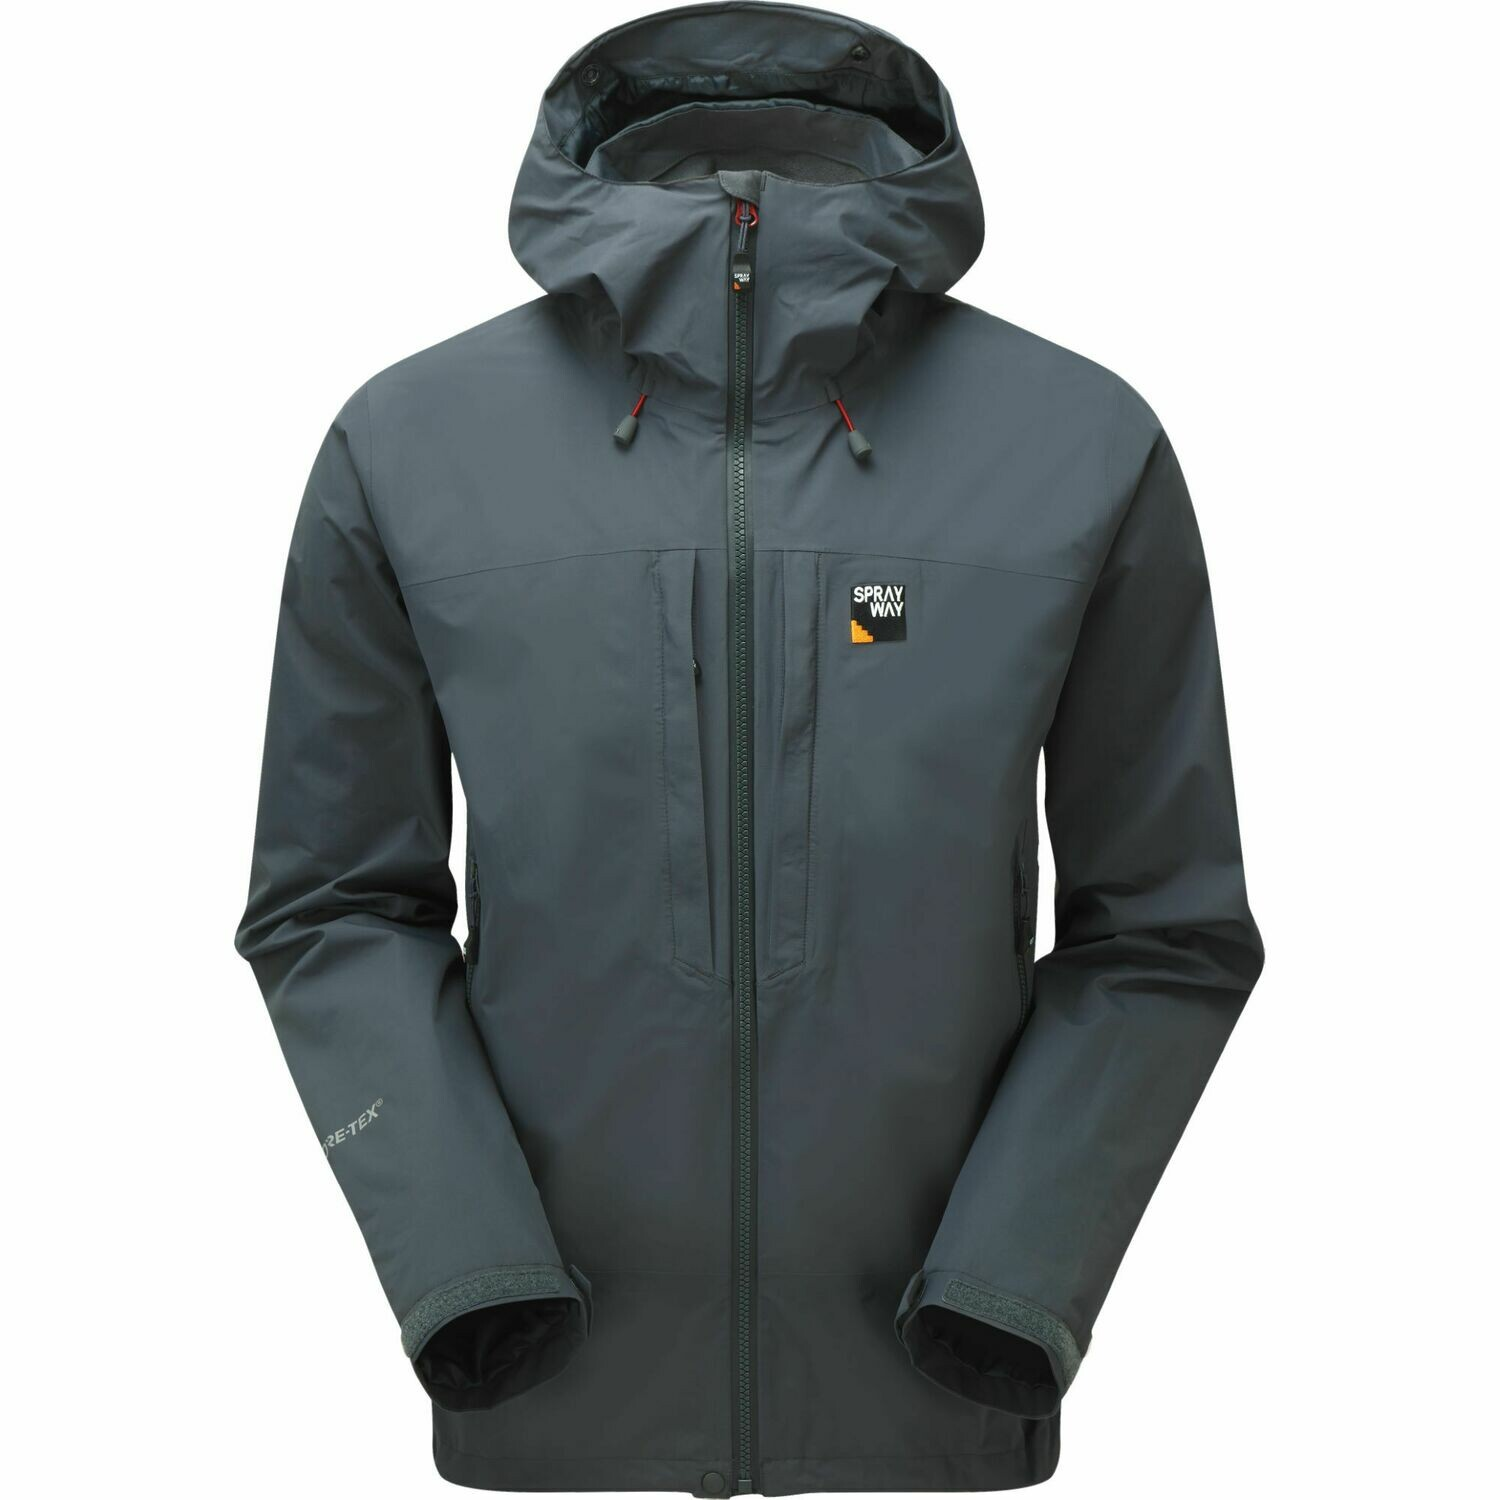 SPRAYWAY NANT GORETEX JACKET SLATE